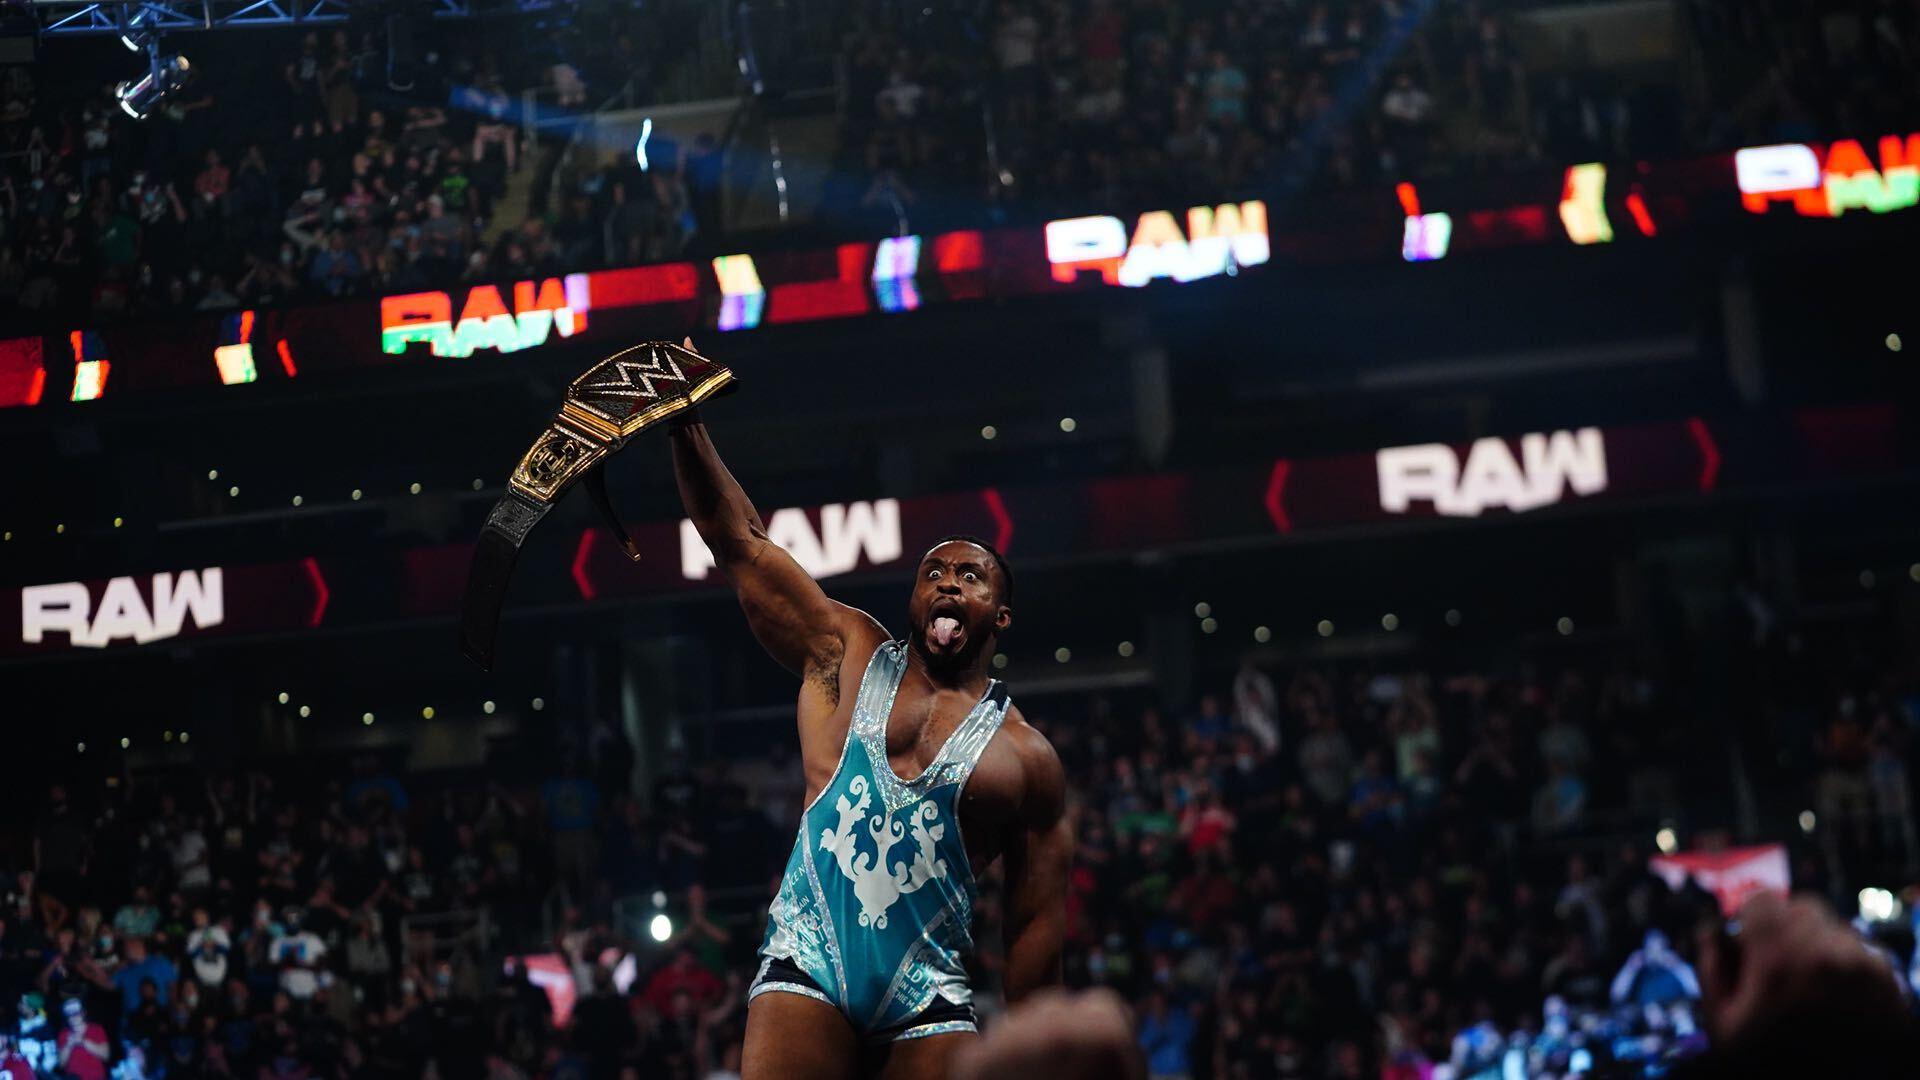 Big E Cashes In Money In The Bank 2021 Contract To Become New WWE Champion 2